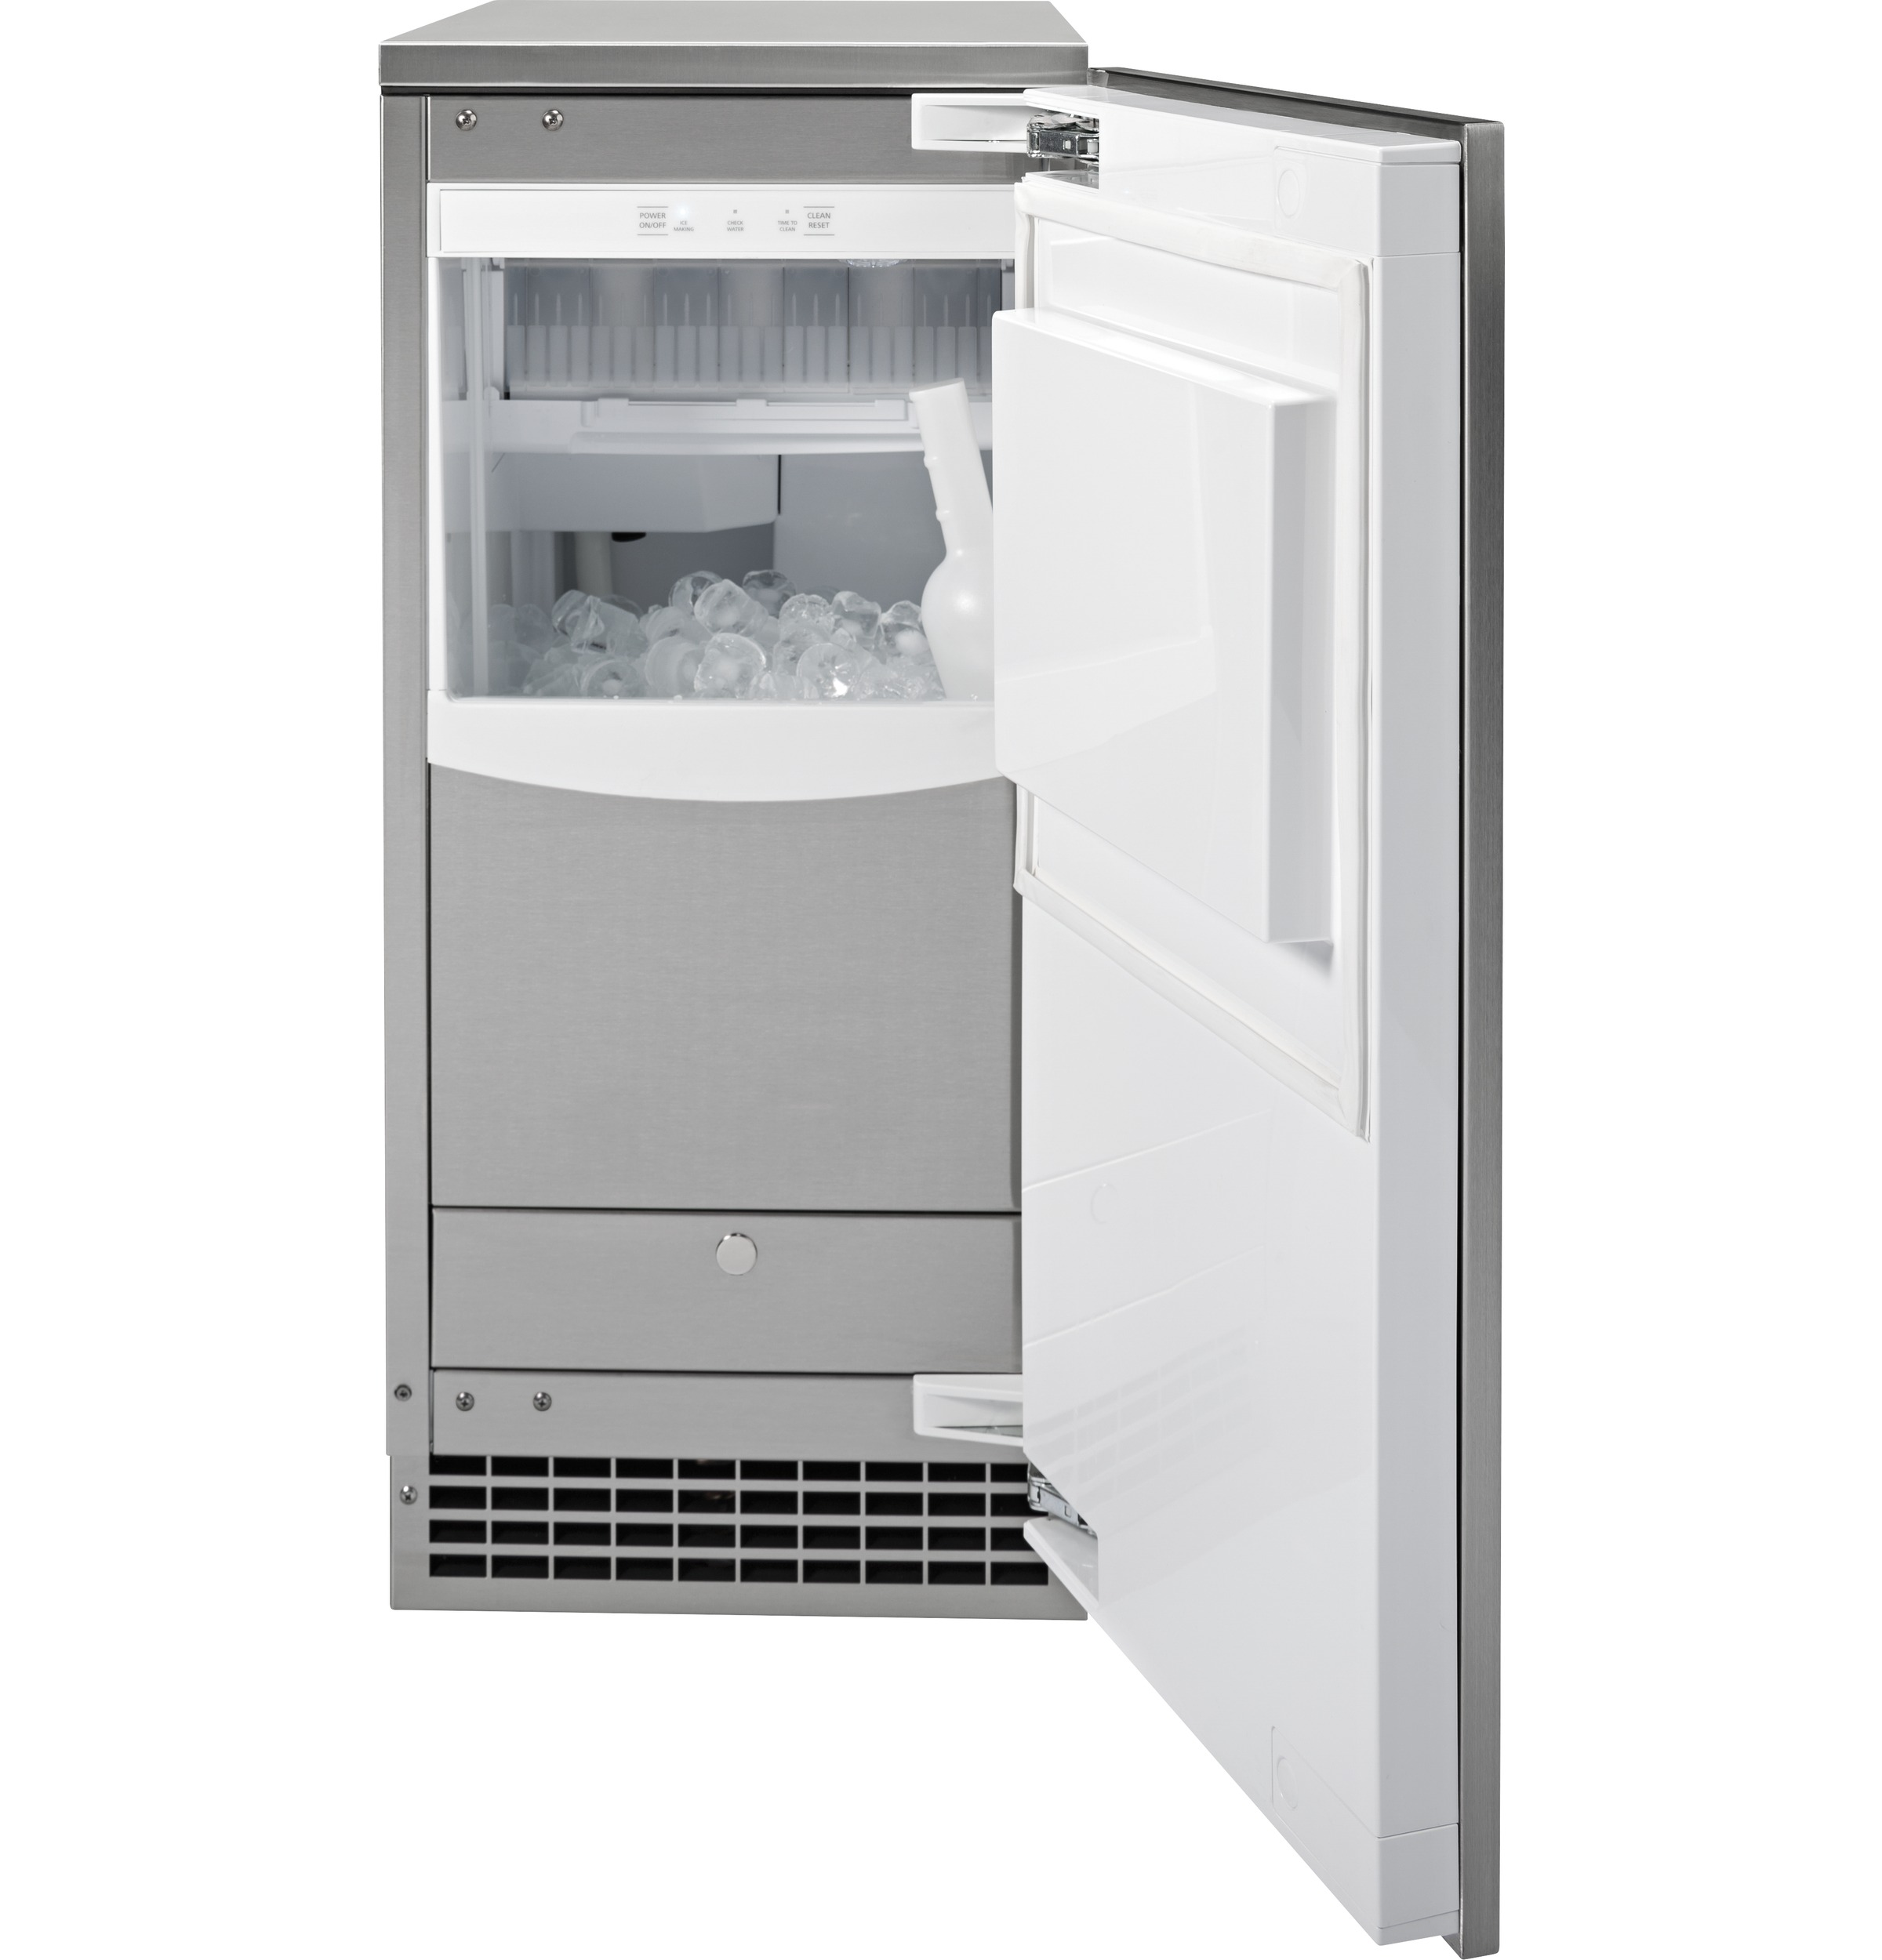 Model: UCC15NJII | Ice Maker 15-Inch - Gourmet Clear Ice